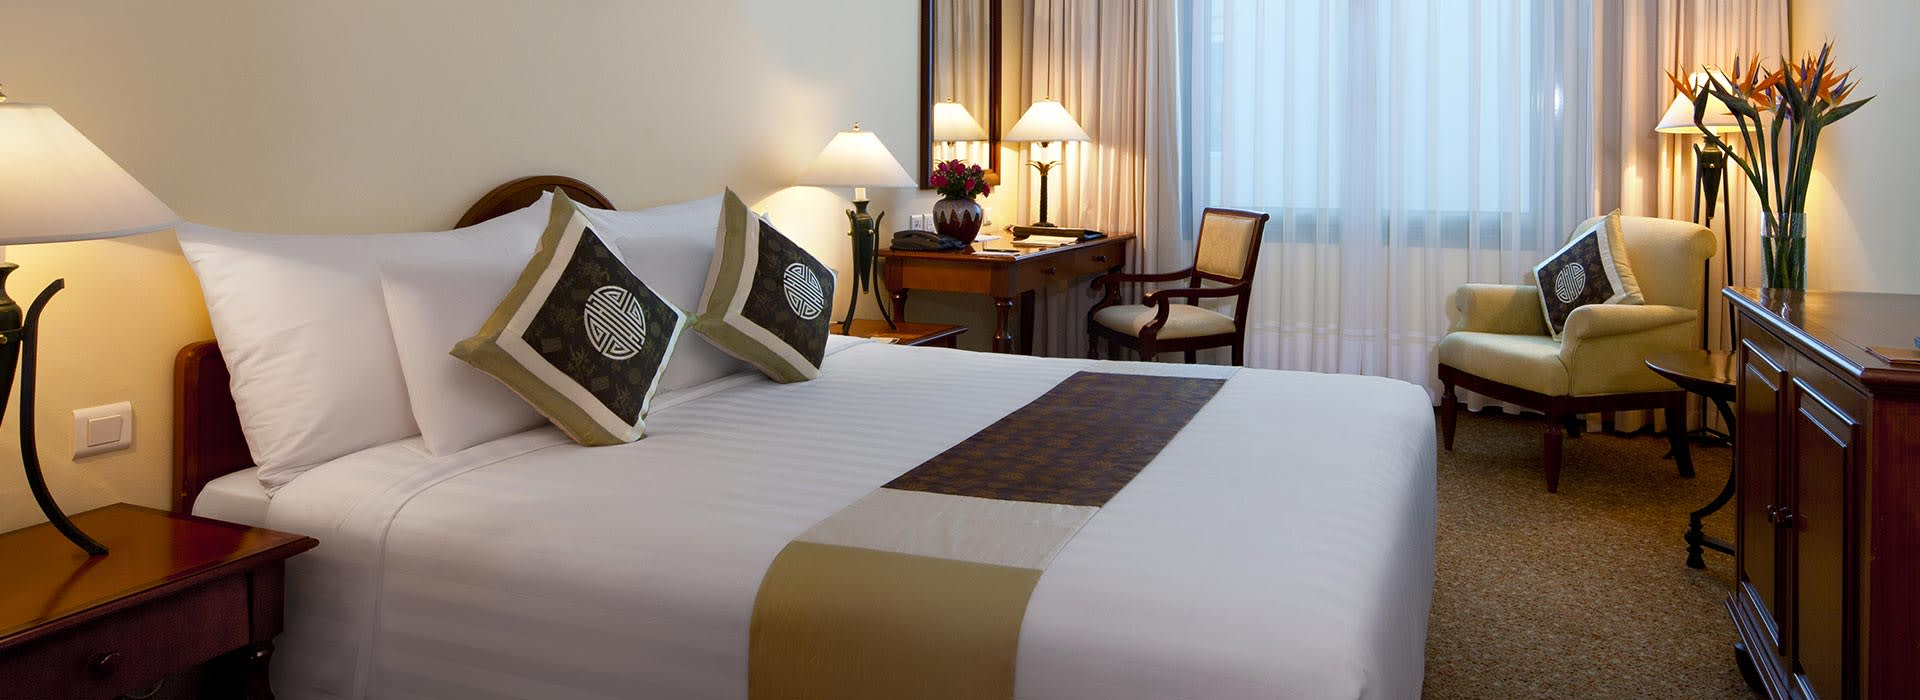 Suites for families at Family Hotels Vietnam